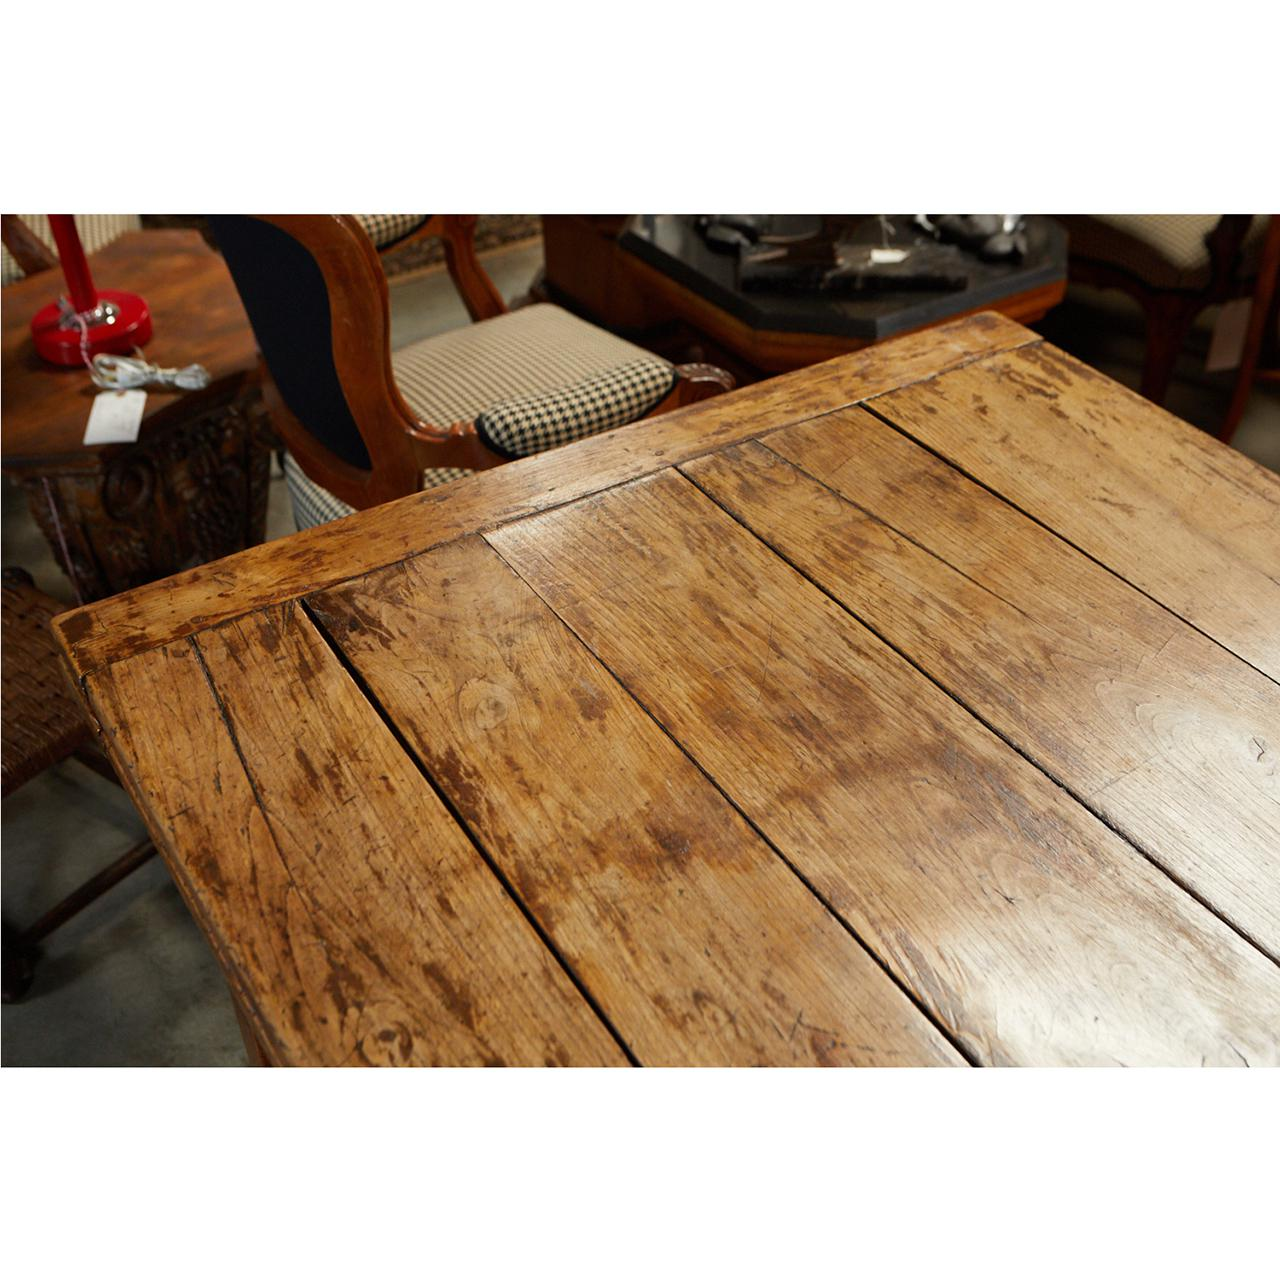 Fruitwood French Country Dining Table With Pull Out Leaves For Sale   Image  7 Of 11